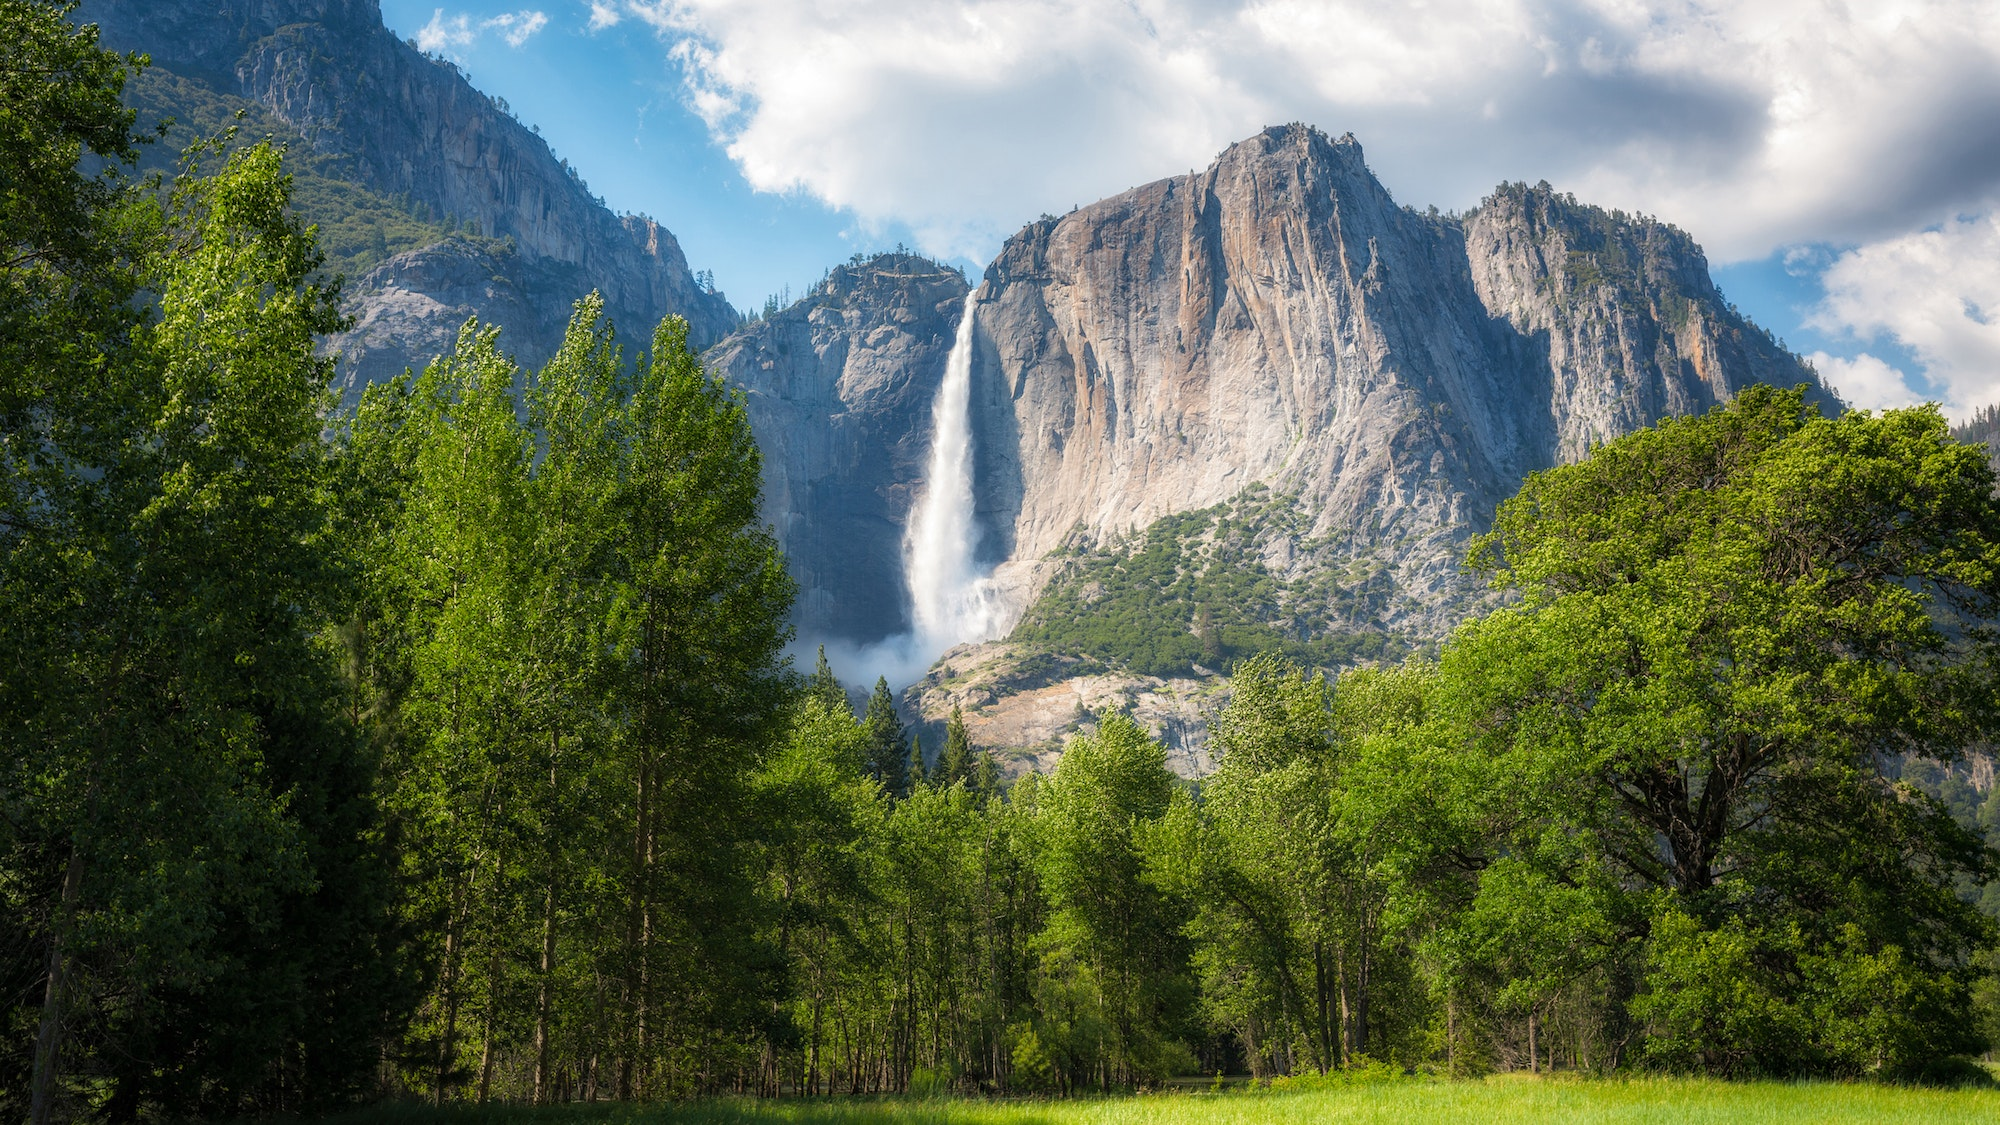 Yosemite National Park is famous for its towering waterfalls, granite cliffs, ancient sequoias, and valley meadows.